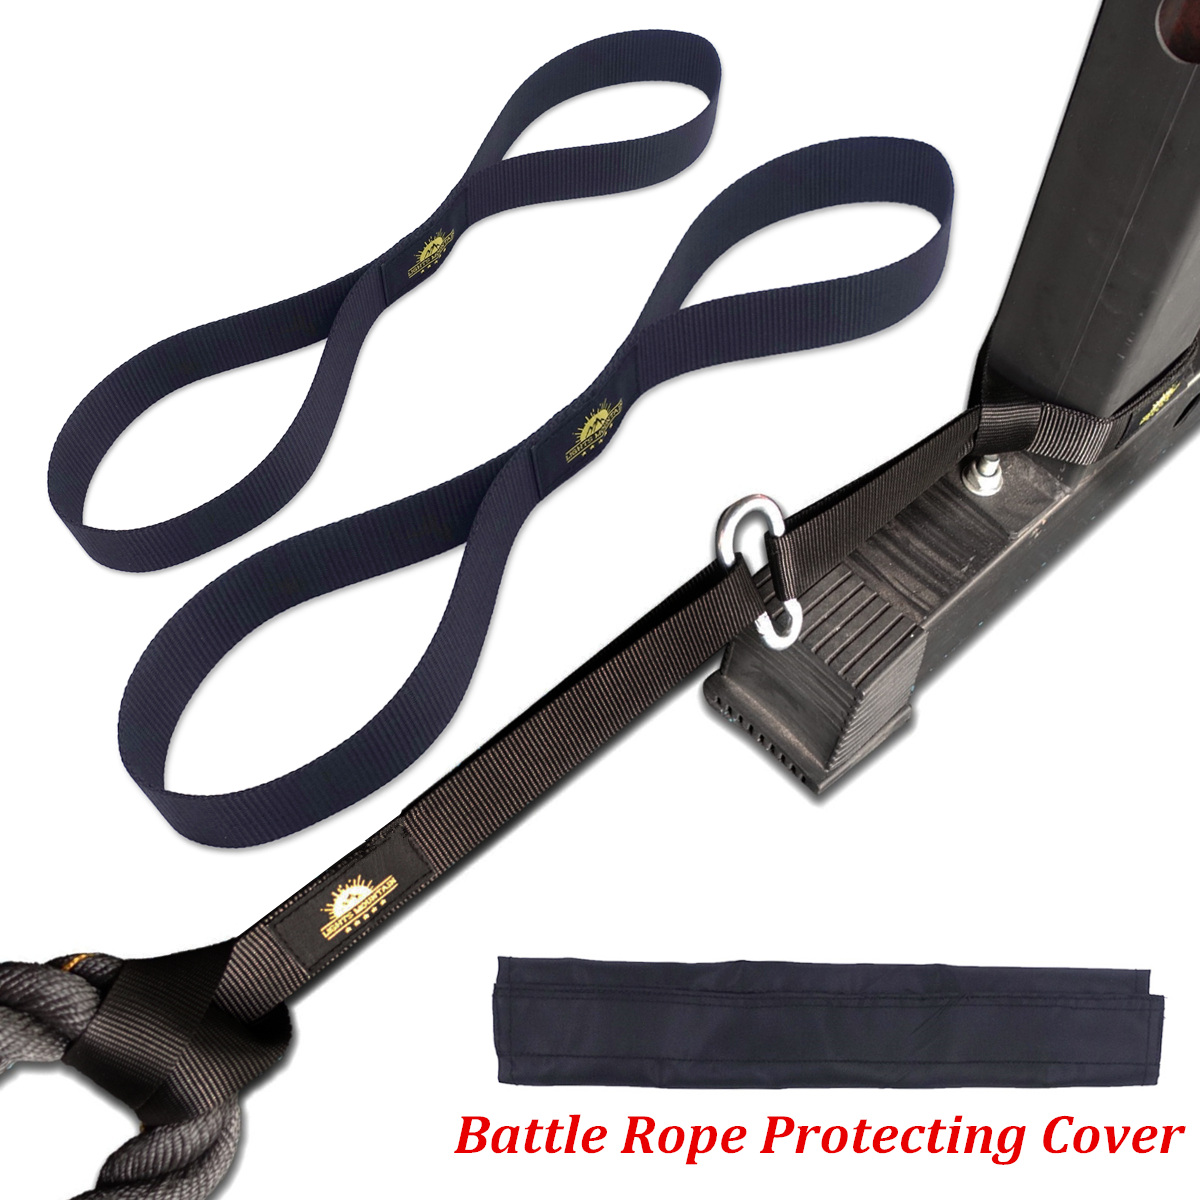 Fitness Battle Rope Anchor Strap Kit Heavy Duty Reinforced Nylon Big Size Easy Setup For Home Gym Outdoor Exercise Training